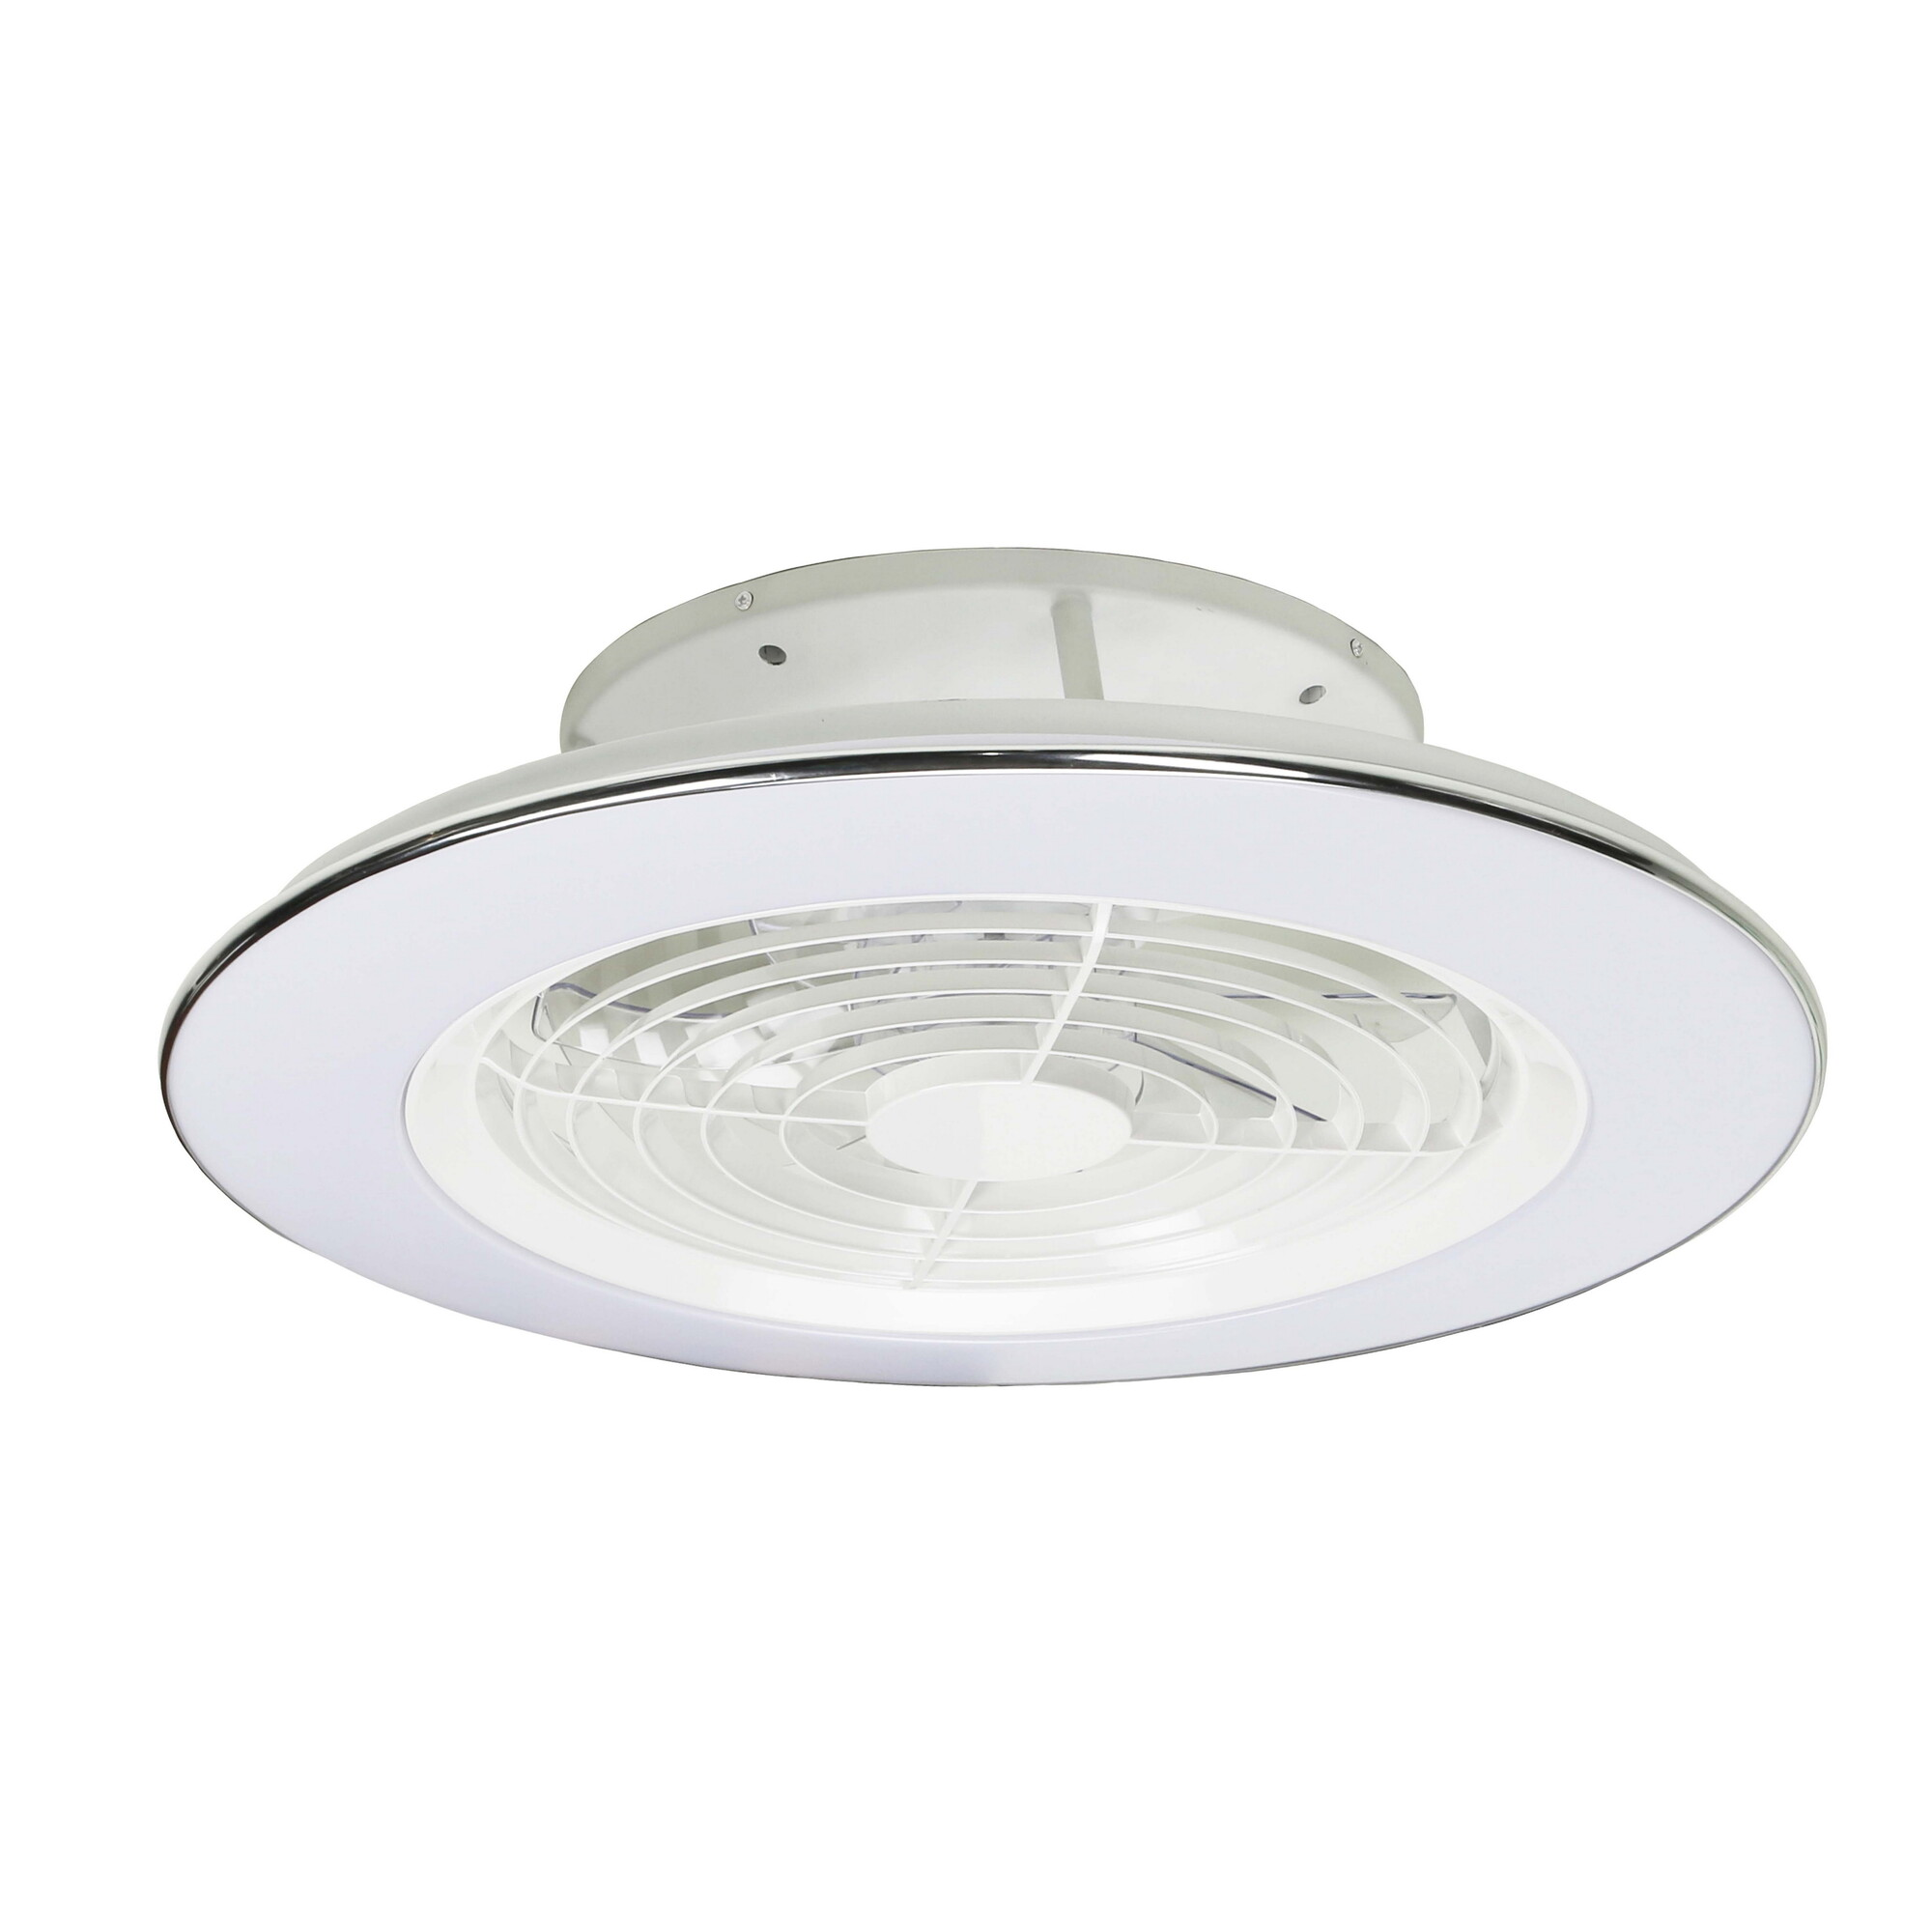 ALISIO Ventilator LED 1x70W/4200lm Wit